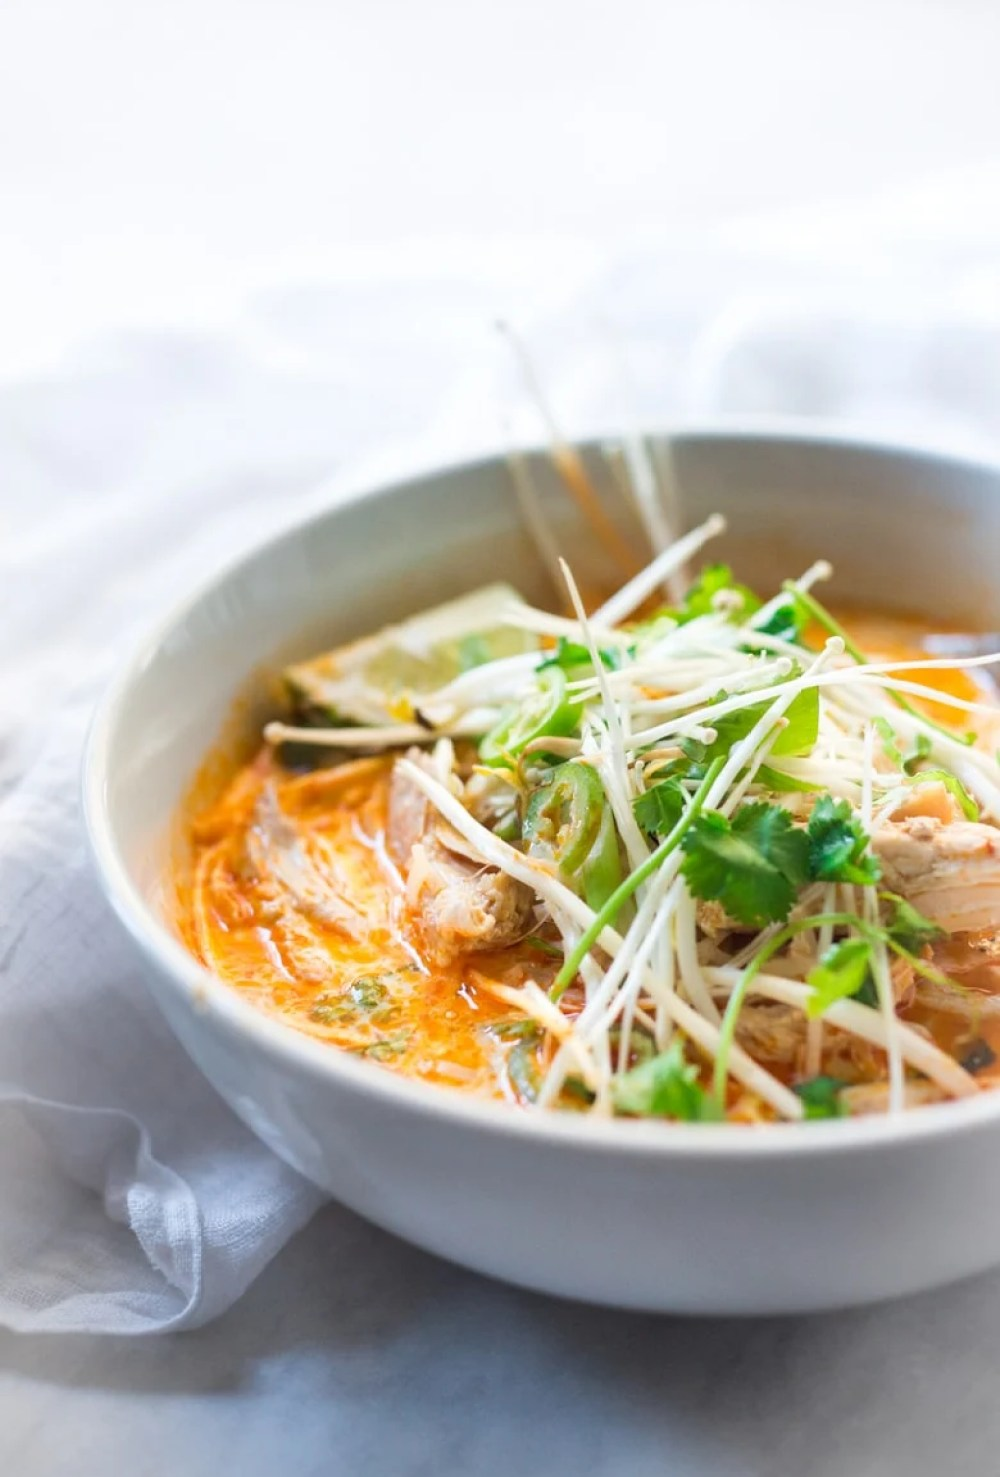 10 Warming Thai Recipes | to help take the chill out of winter